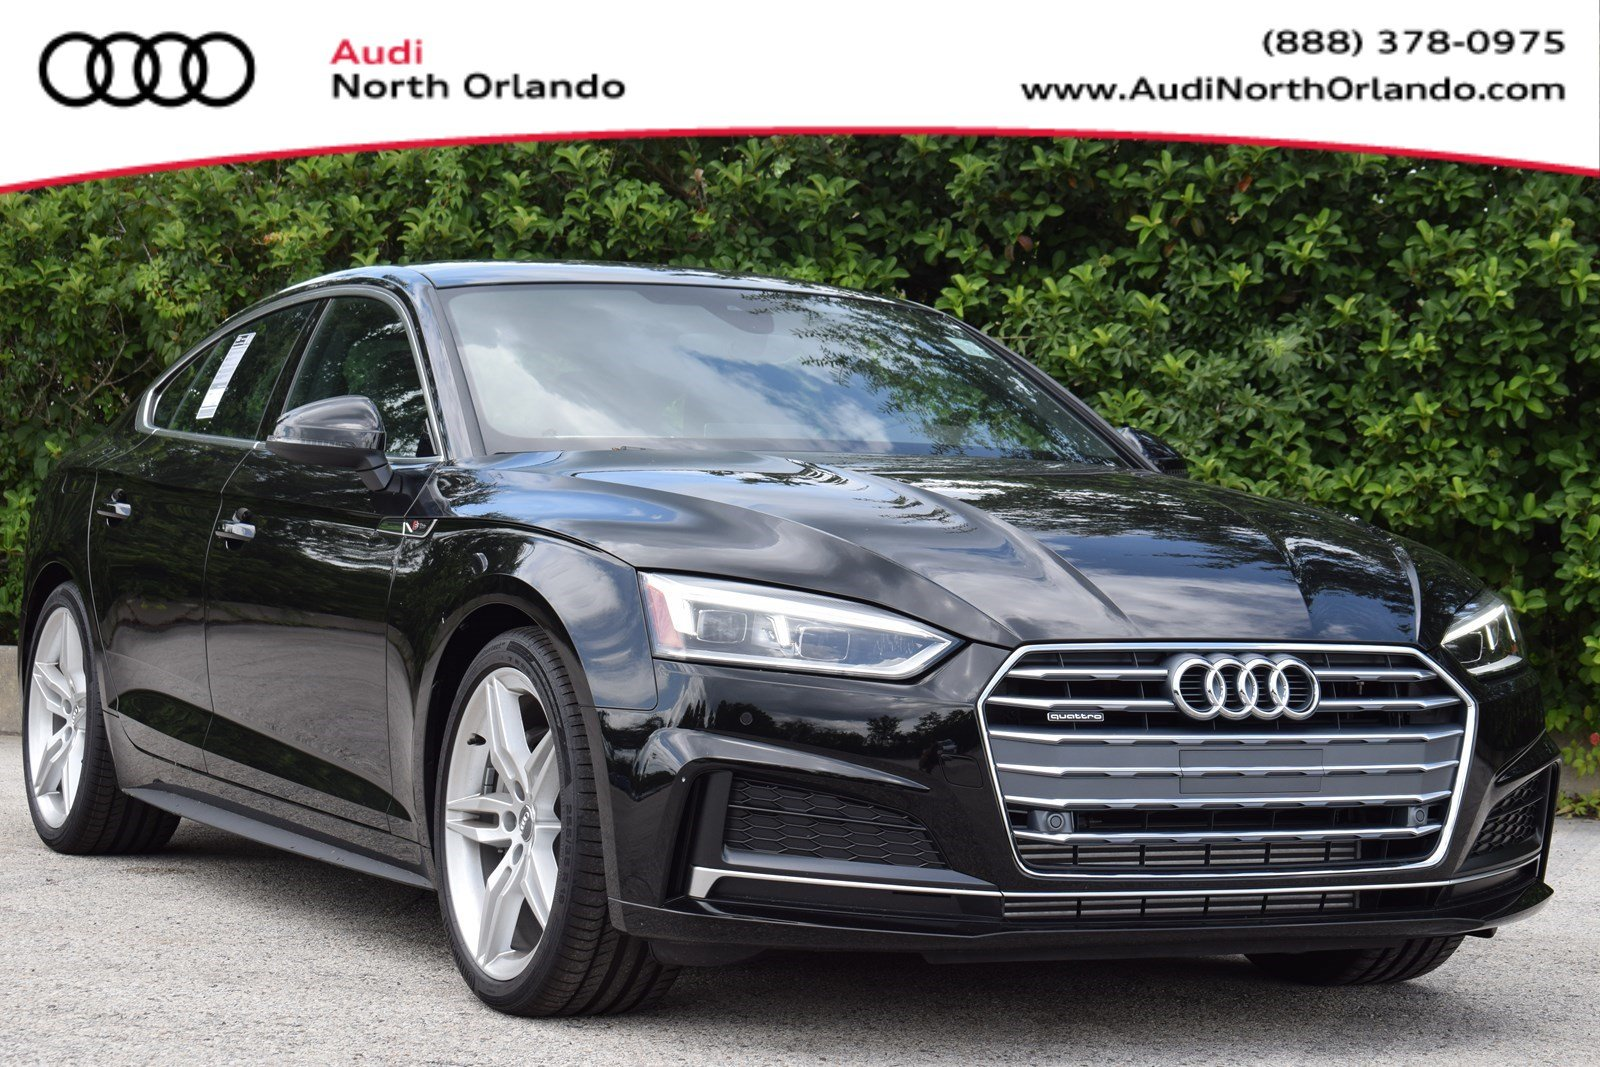 Featured new 2019 Audi A5 2.0T Premium Plus Sportback for sale in Sanford, FL, near Orlando, FL.